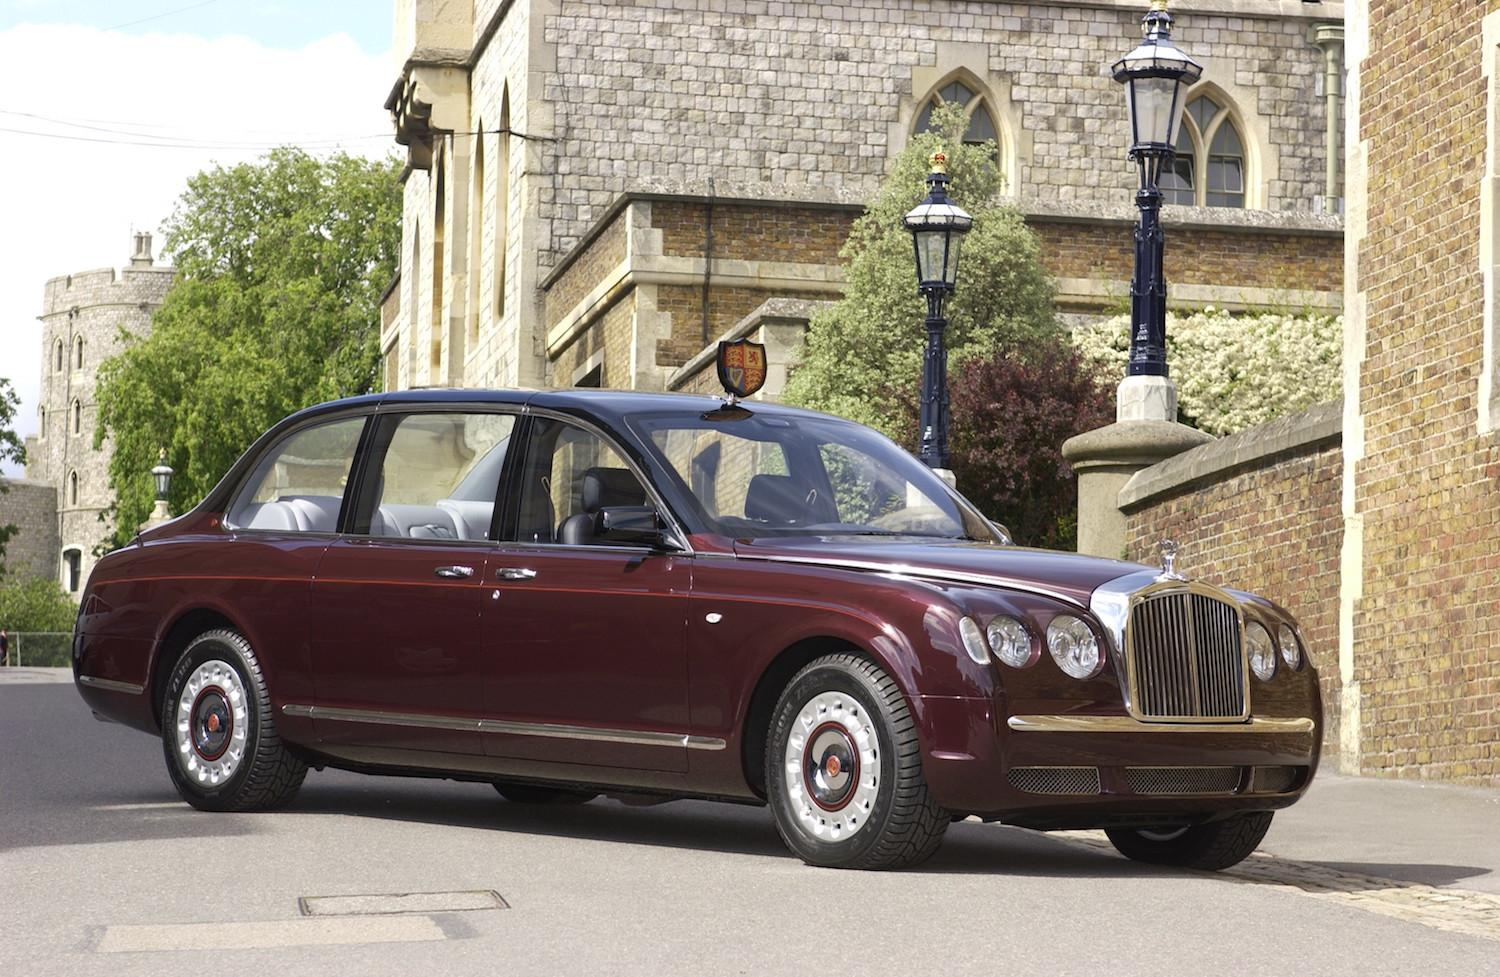 Her Majesty The Queen Would Be Most Amused If You Applied For The - Bentley chauffeur